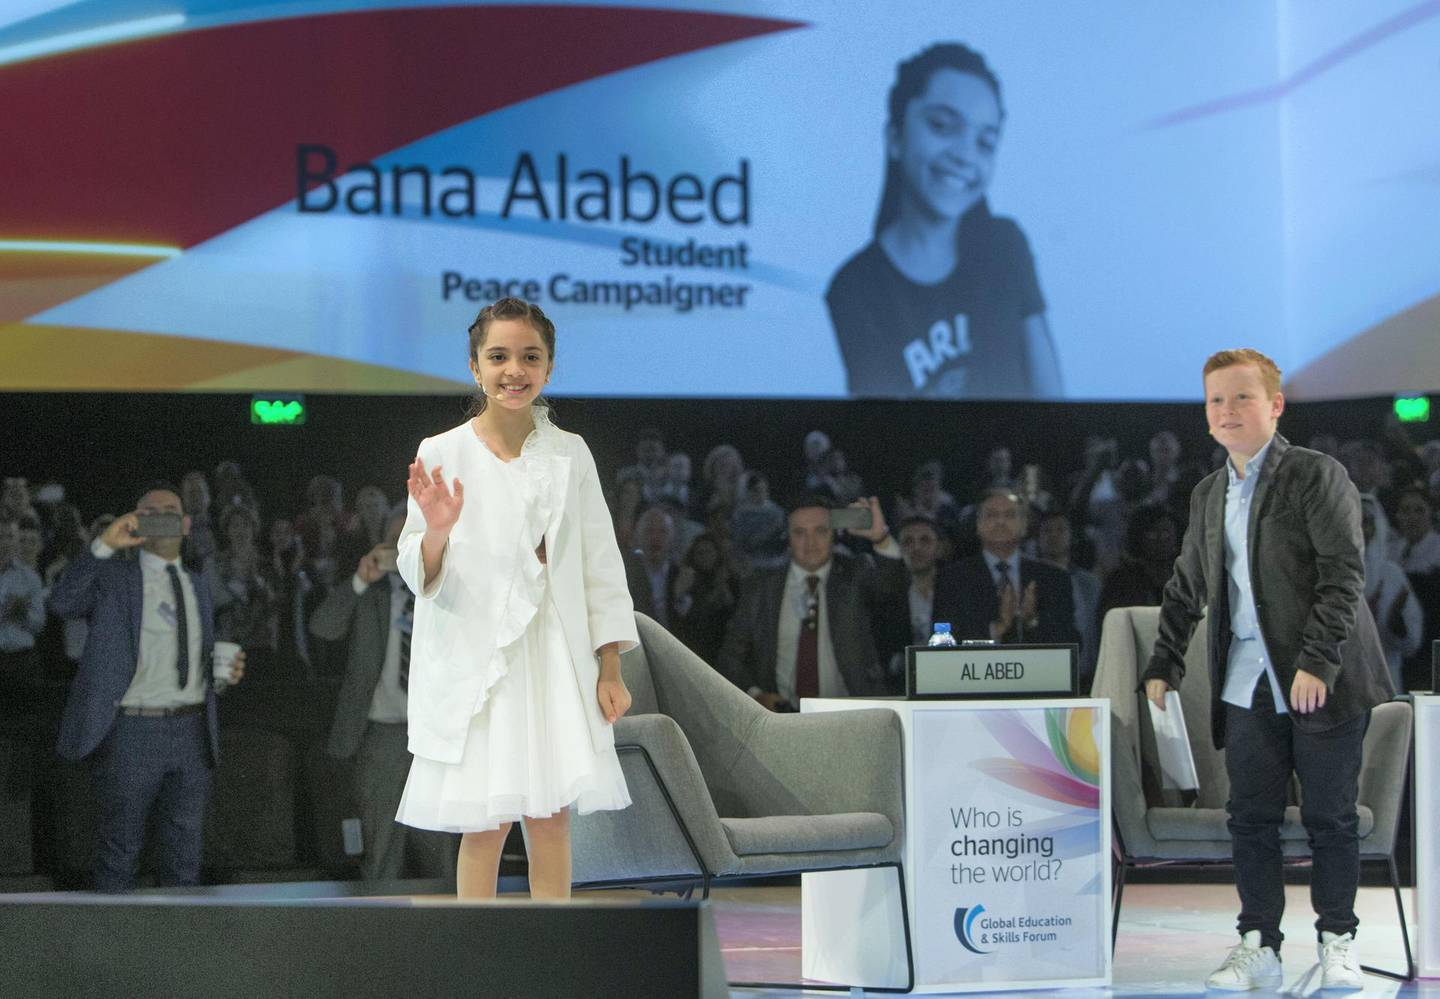 DUBAI, UNITED ARAB EMIRATES - Sana Alabed, peace campaigner who is know for her tweets at the Global Education and Skills Forum 2019 at Atlantis, The Palm.  Leslie Pableo for The National